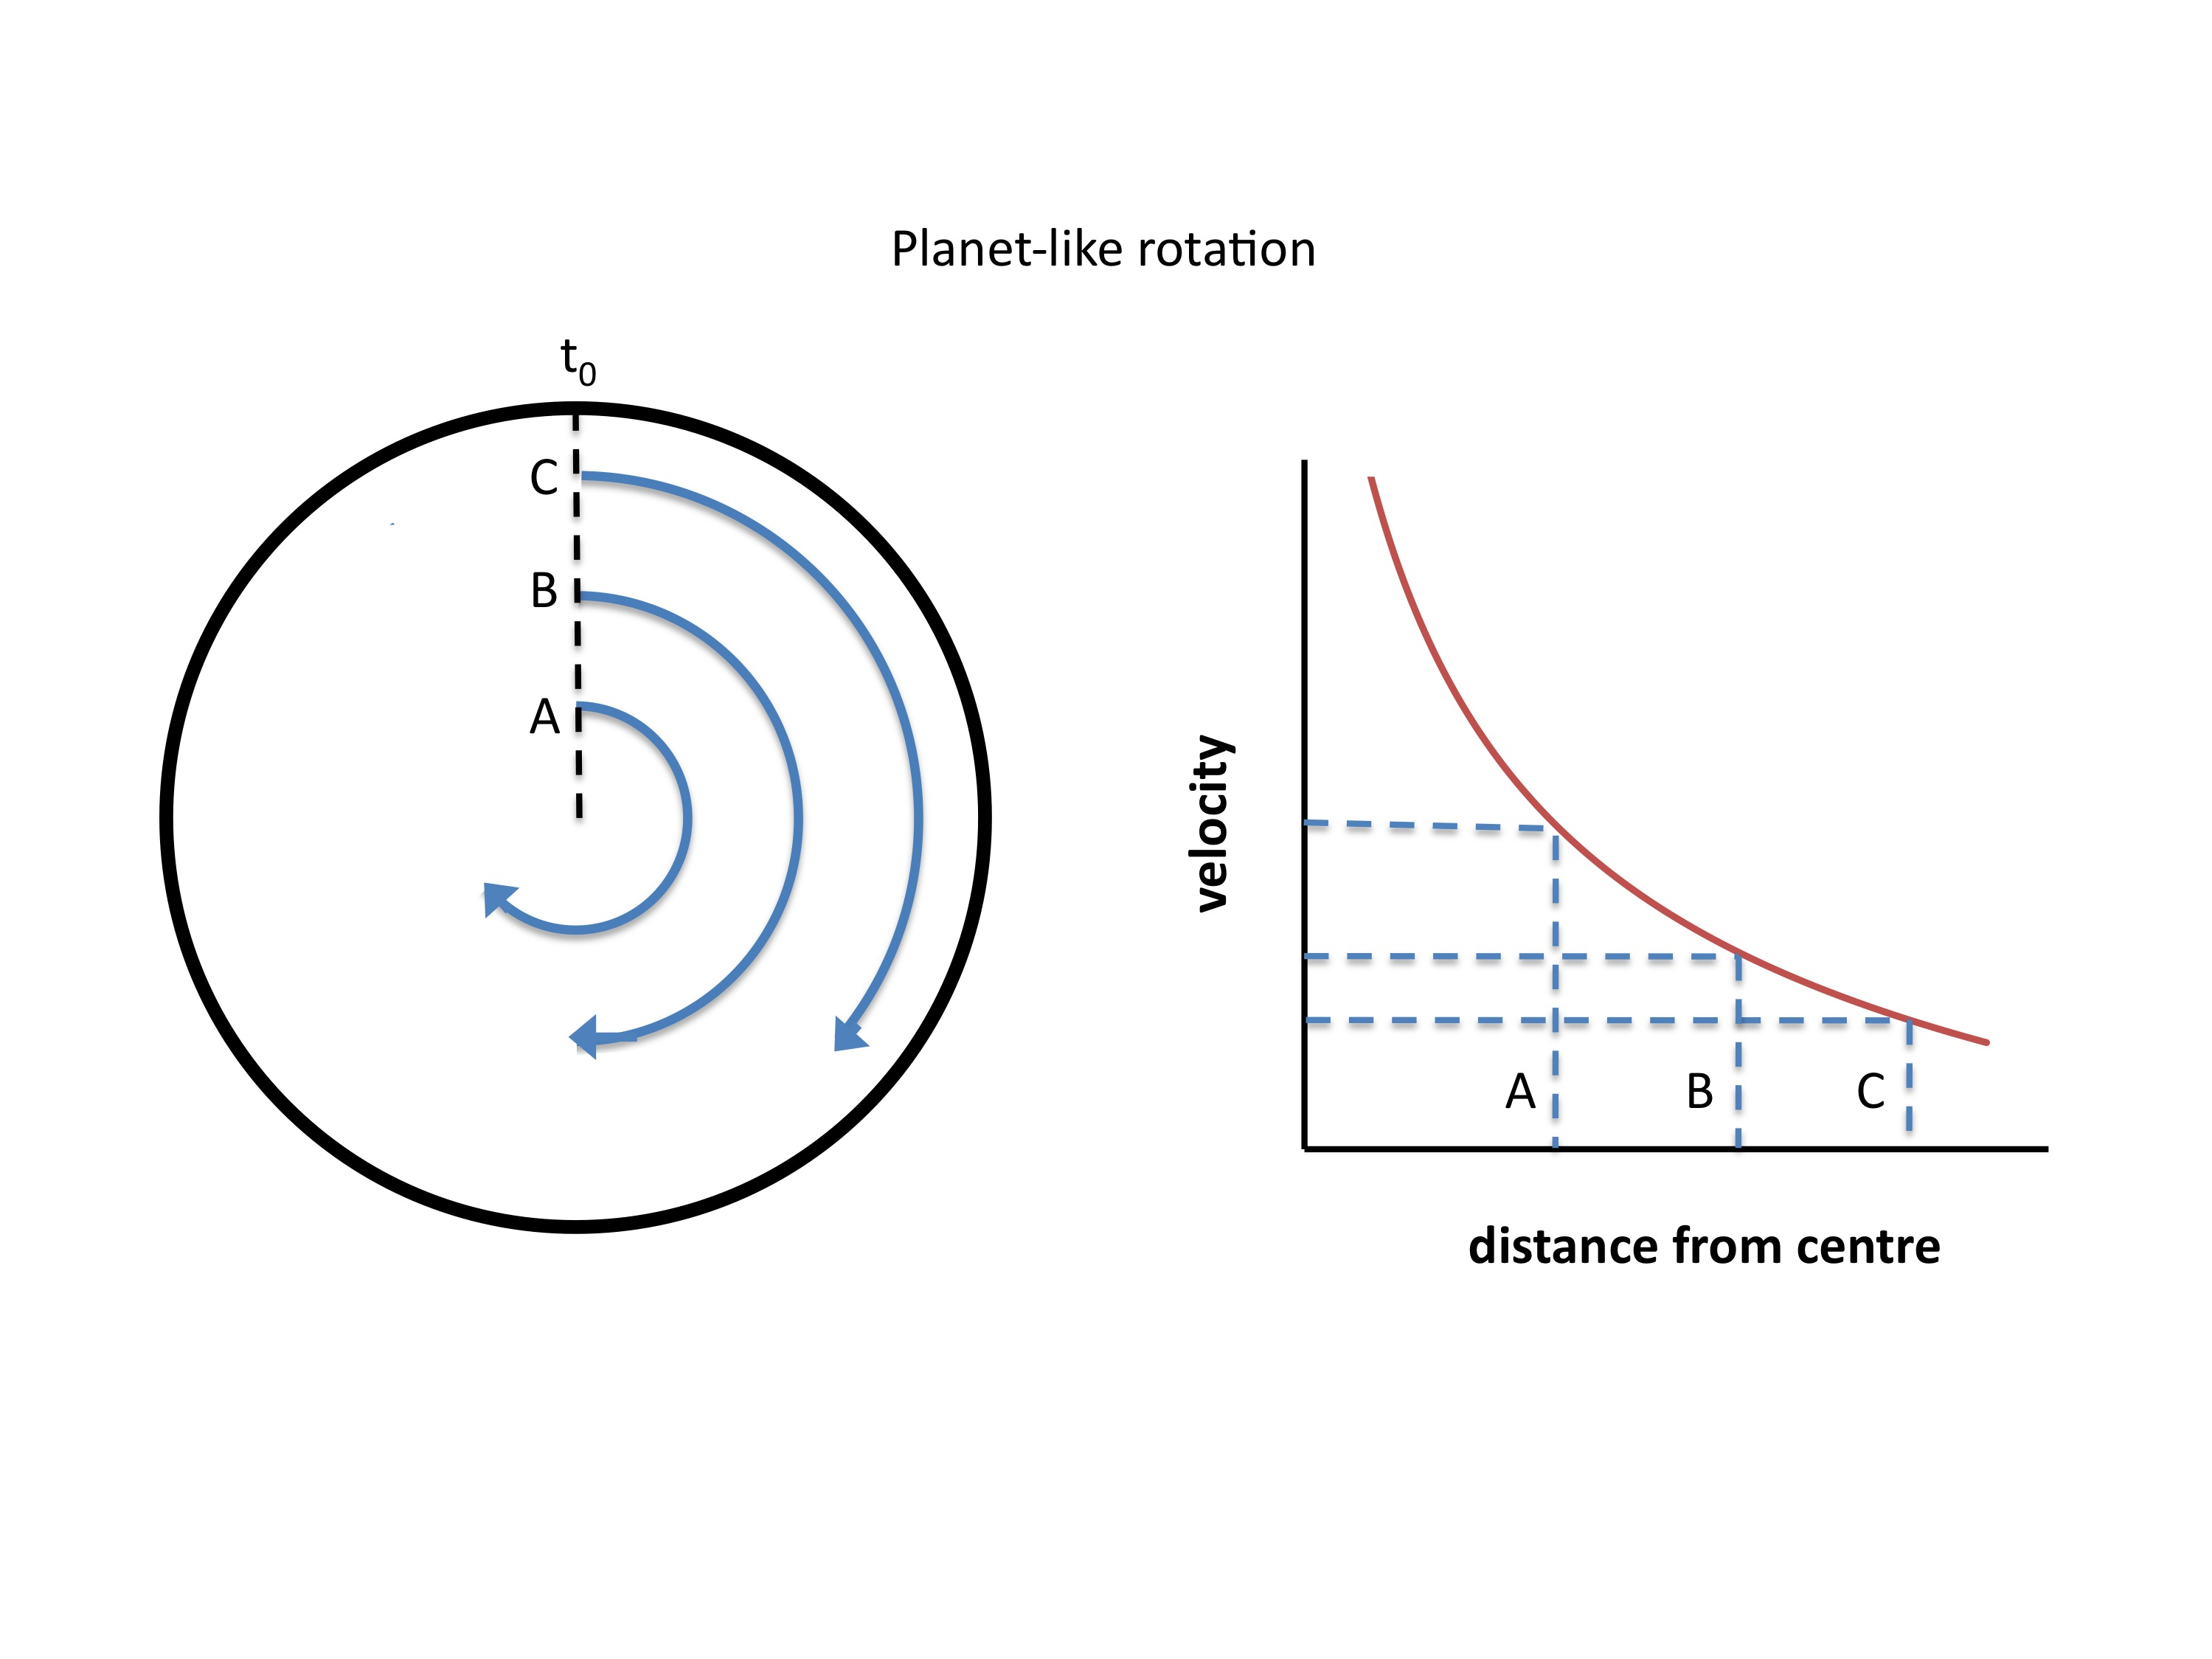 Diagram showing planet-like rotation